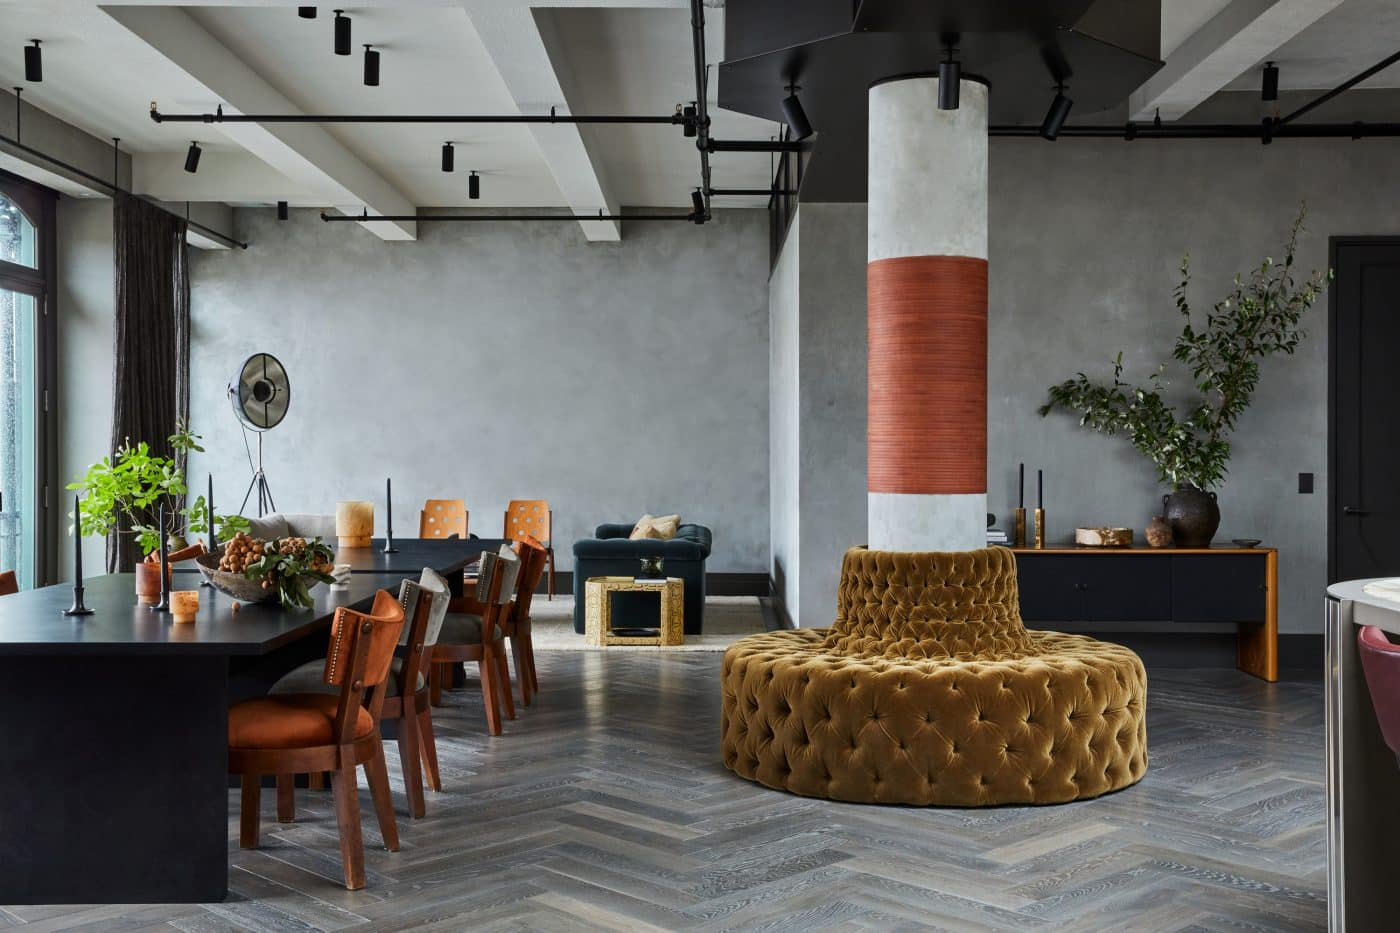 The dining and living areas of a New York loft designed by Jesse Parris-Lamb